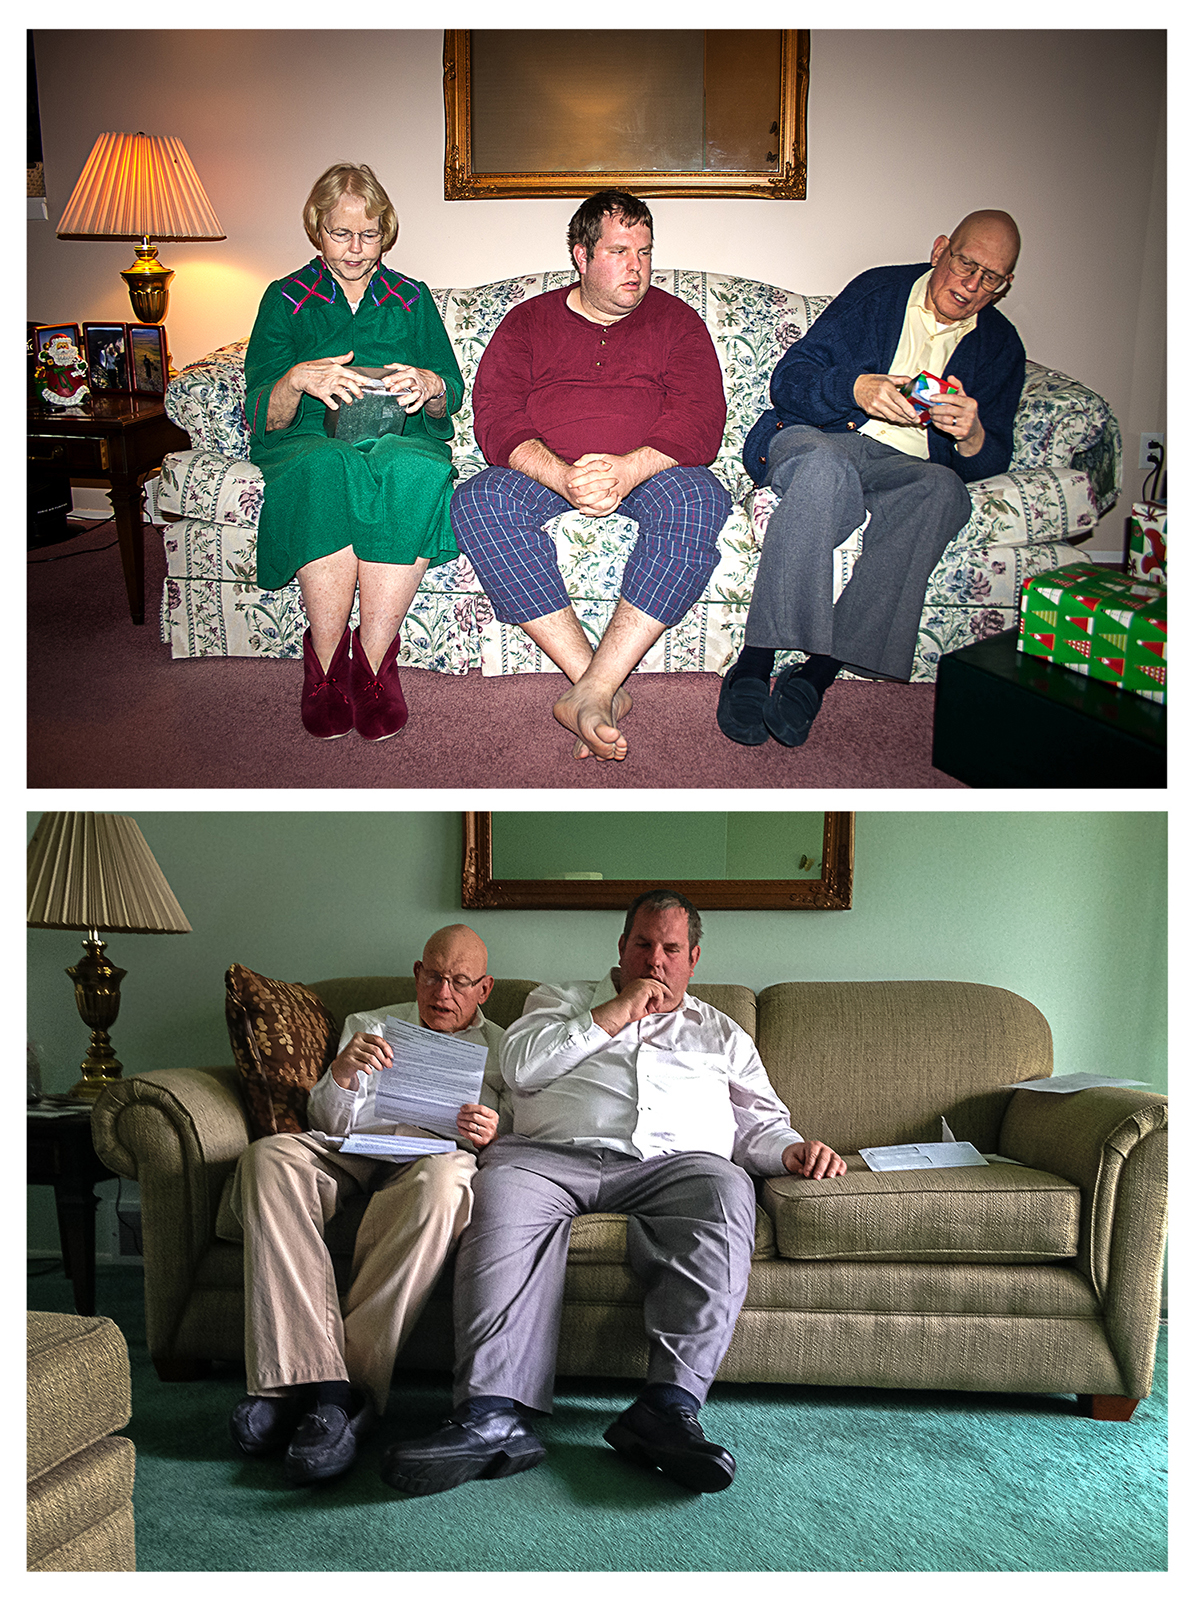 7am – Living Room Couch 2006/2016  ©   Chris Ireland